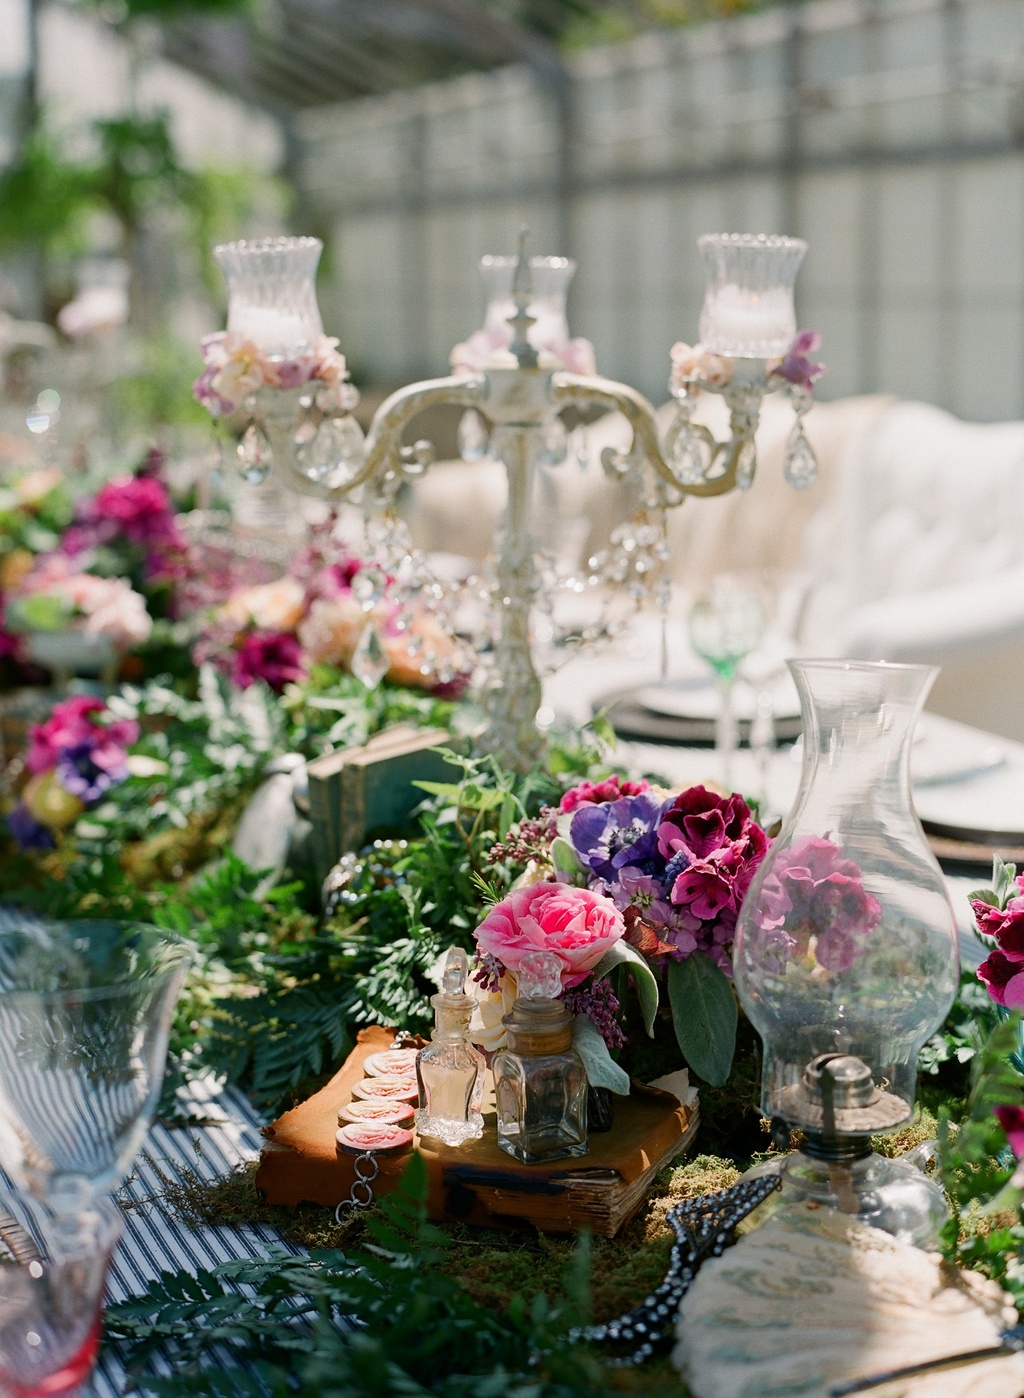 Styled-wedding-beaux-arts-tea-time-monique-lhuillier-santa-barbara-chic-table-setting-flower-candles-90.full